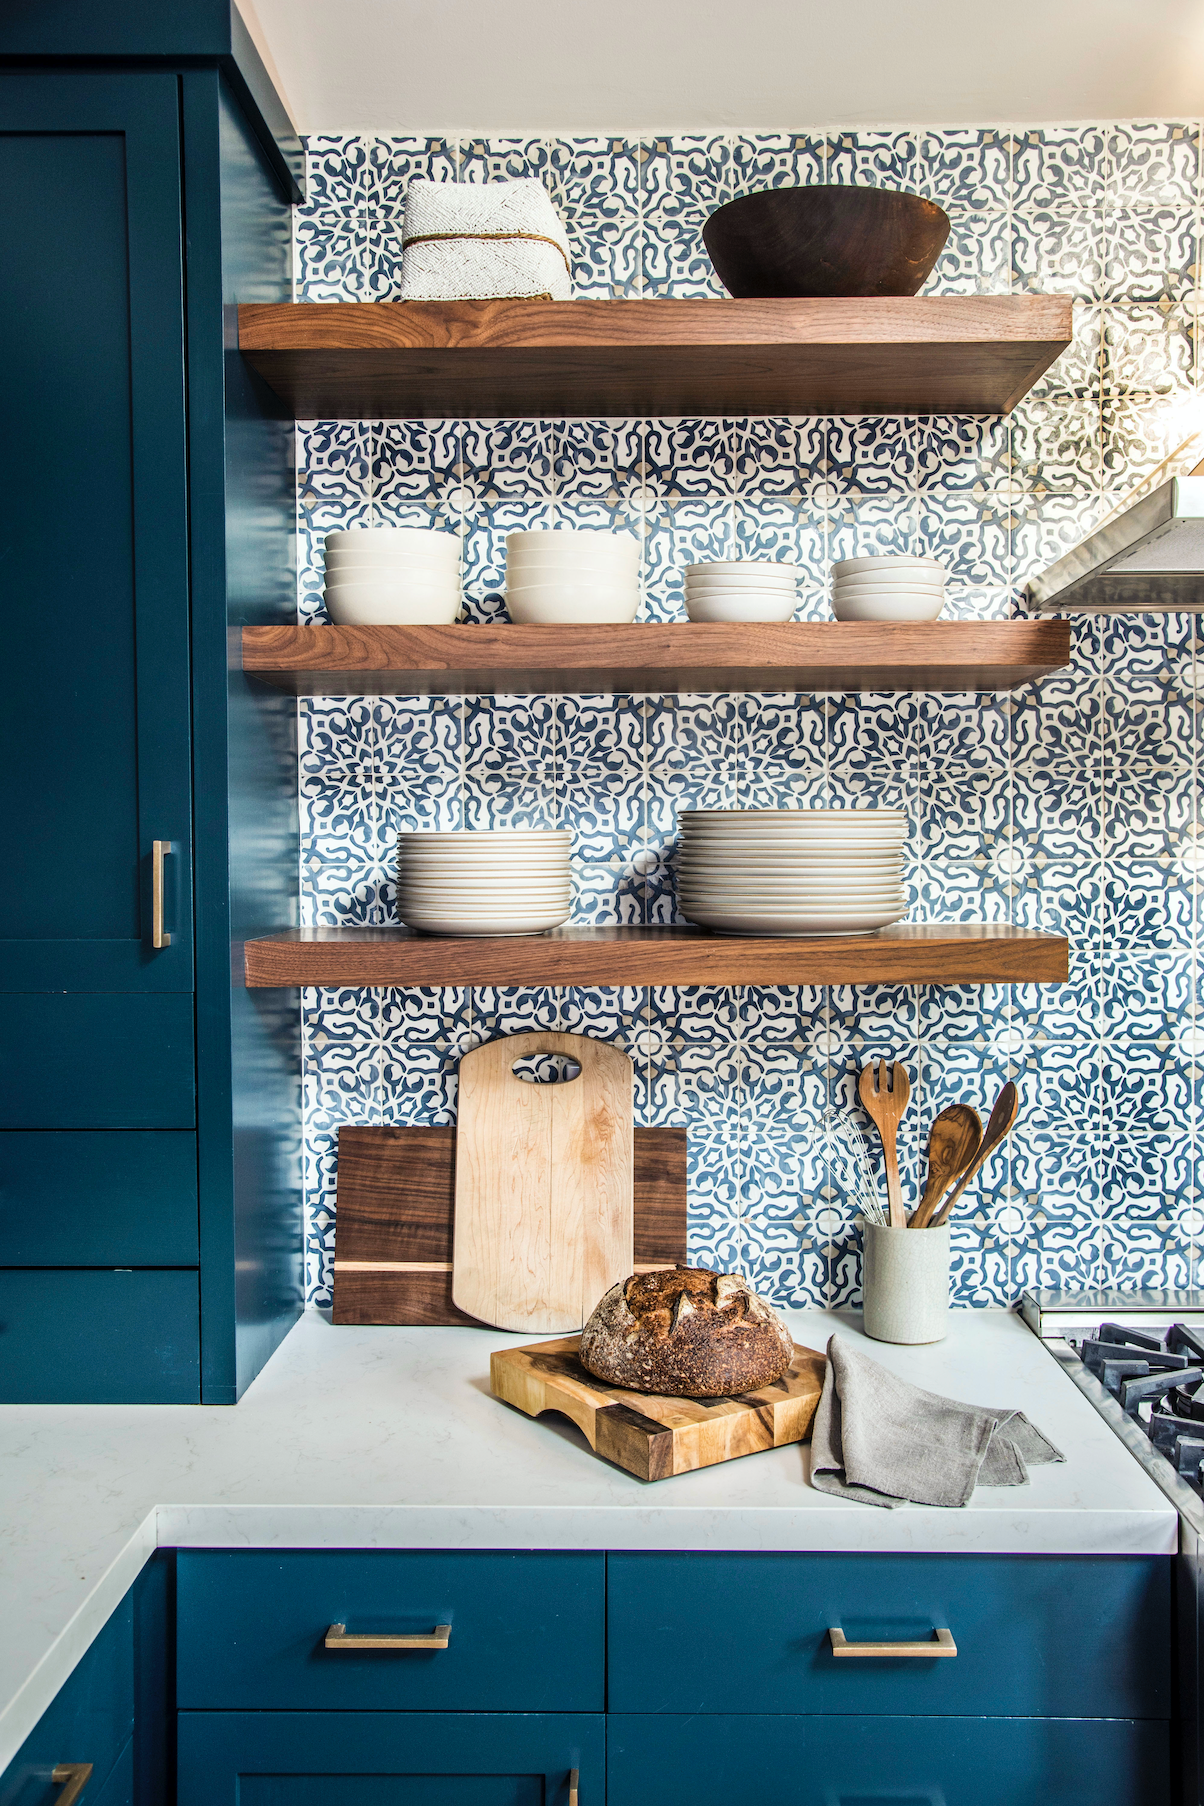 Styled shot of blue kitchen cabinets with gold hardware, tiled backsplash, with styled floating wood shelves and bread board.